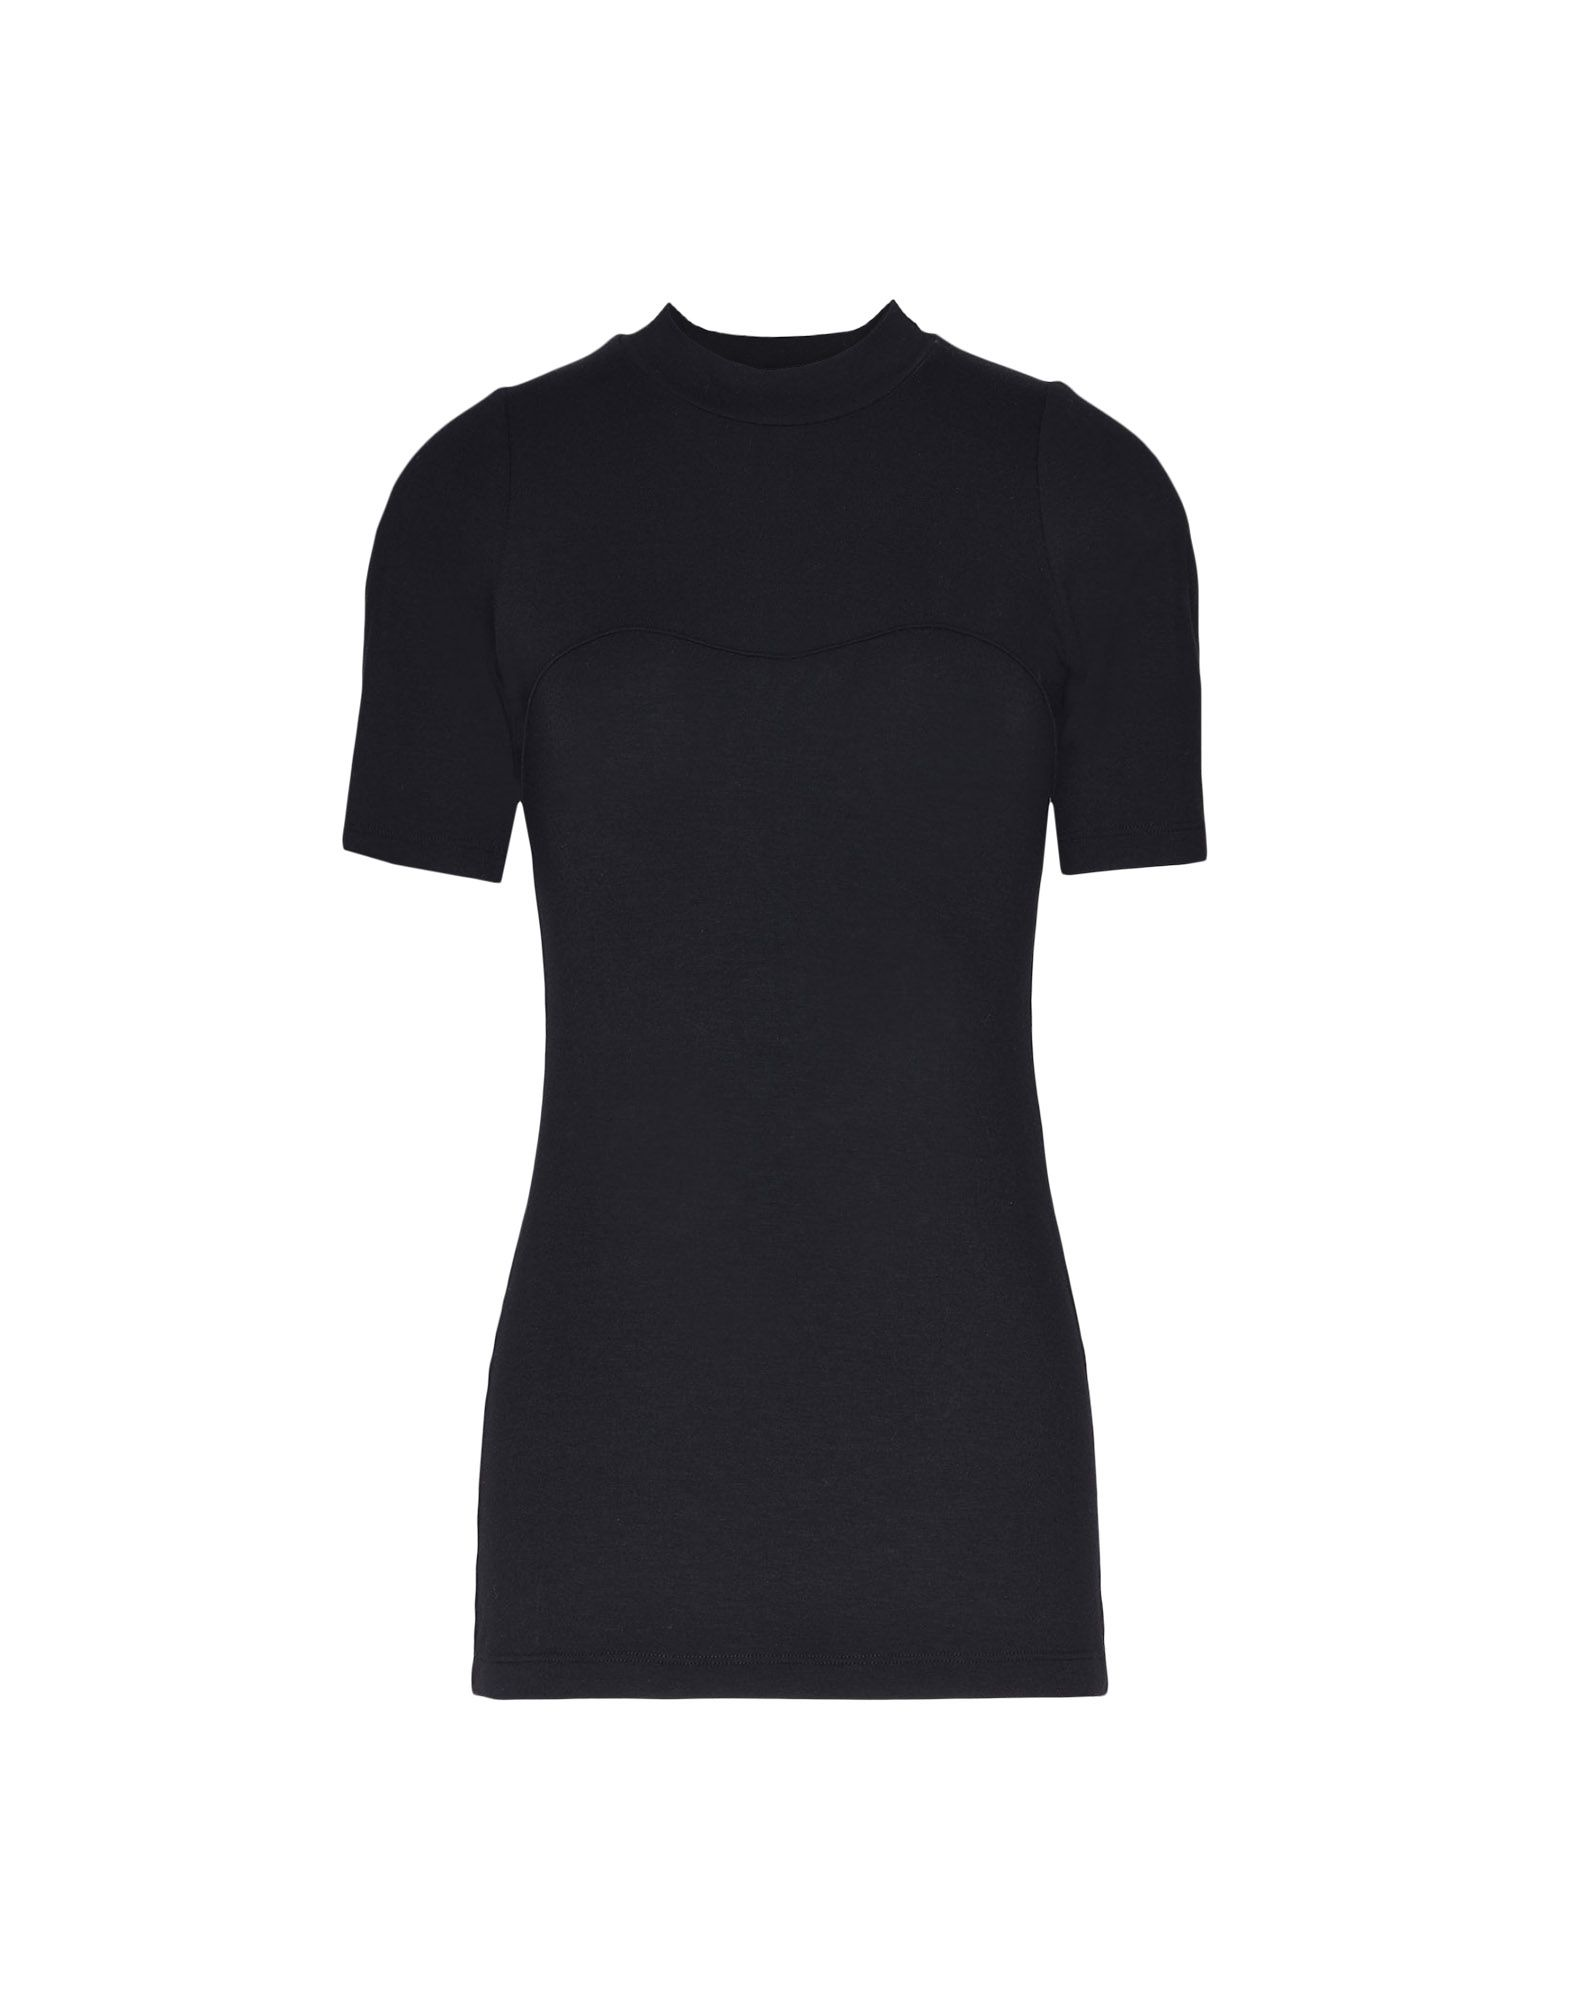 Y-3 Y-3 Prime Wool Tee Short sleeve t-shirt Woman f